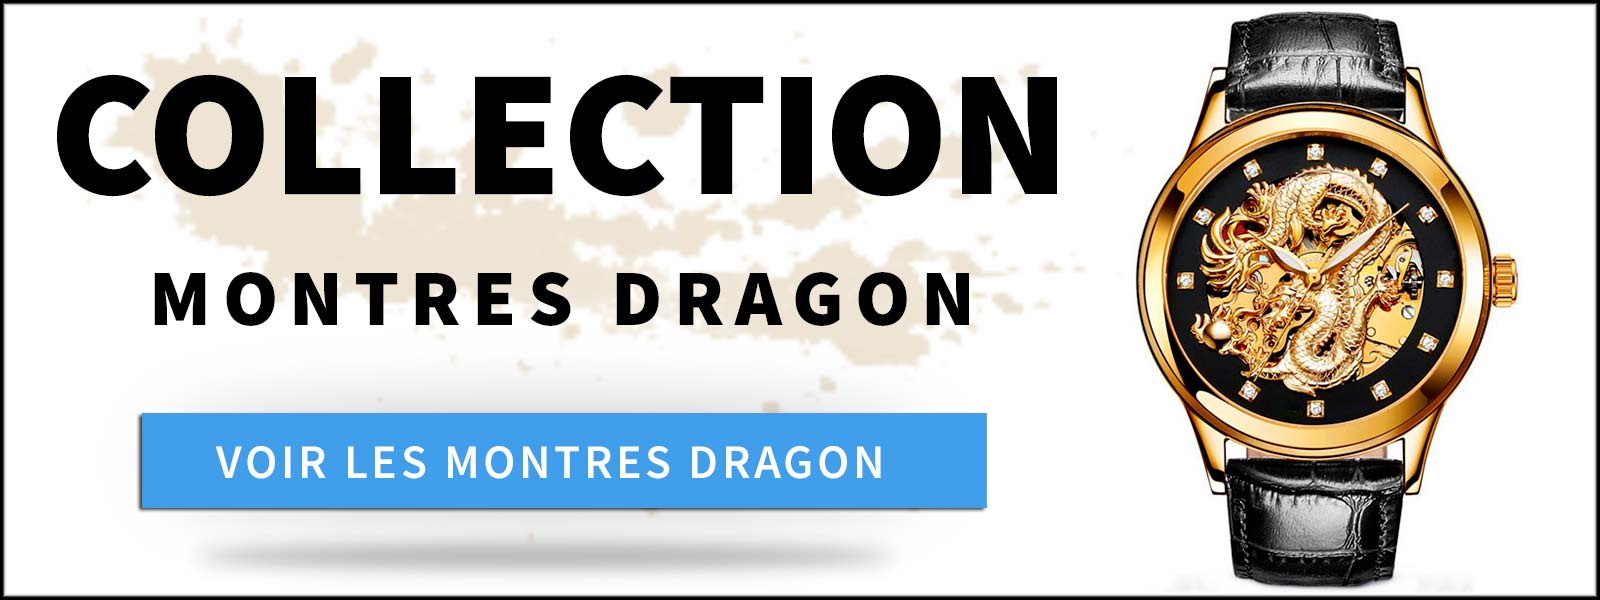 Collection montre dragon